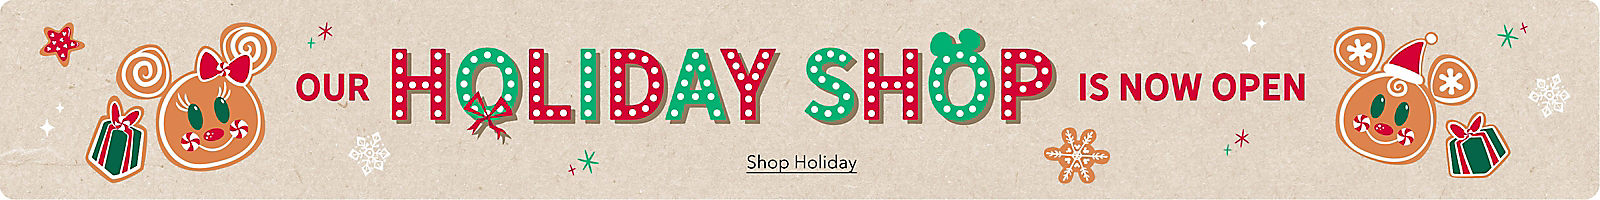 Our Holiday Shop Is Now Open Shop Holiday